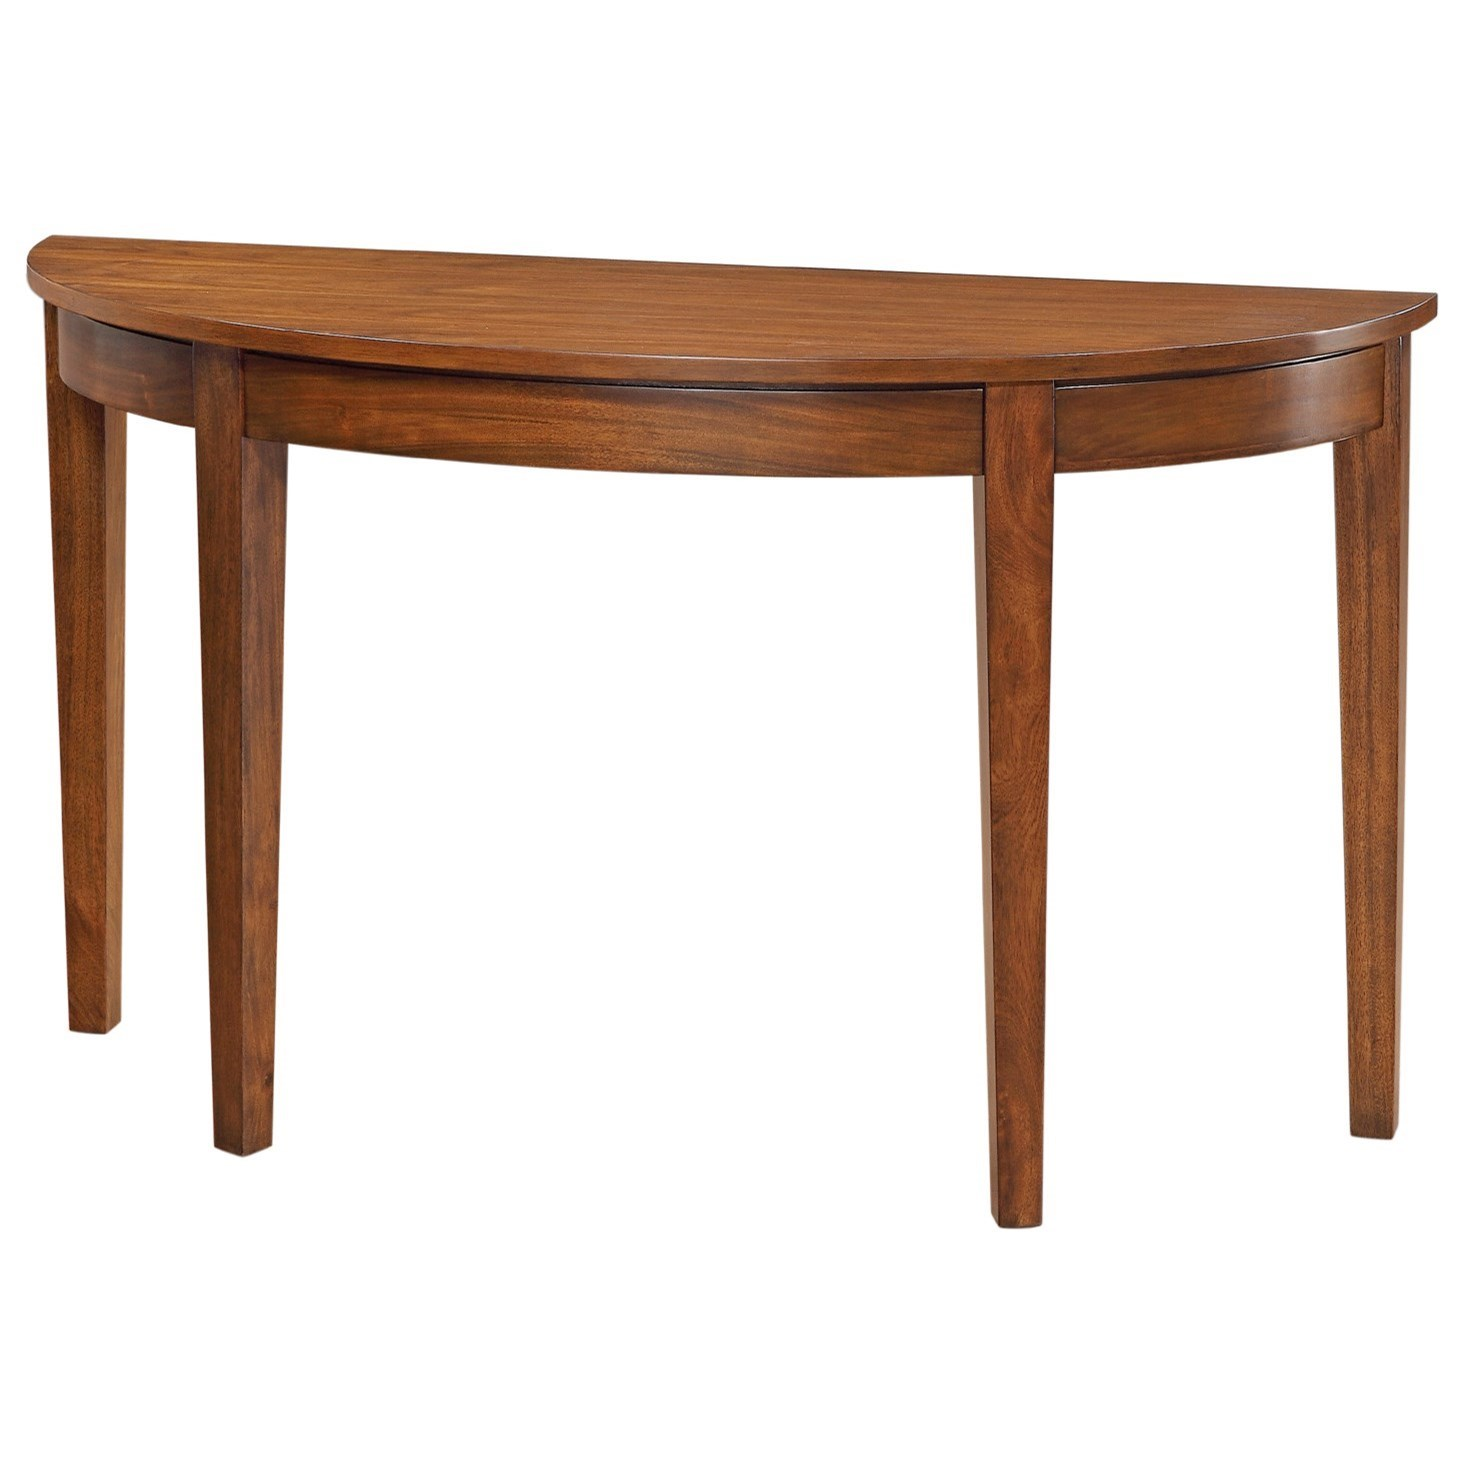 "Davenport 52"" Half Round Sofa Table by Winners Only at Mueller Furniture"